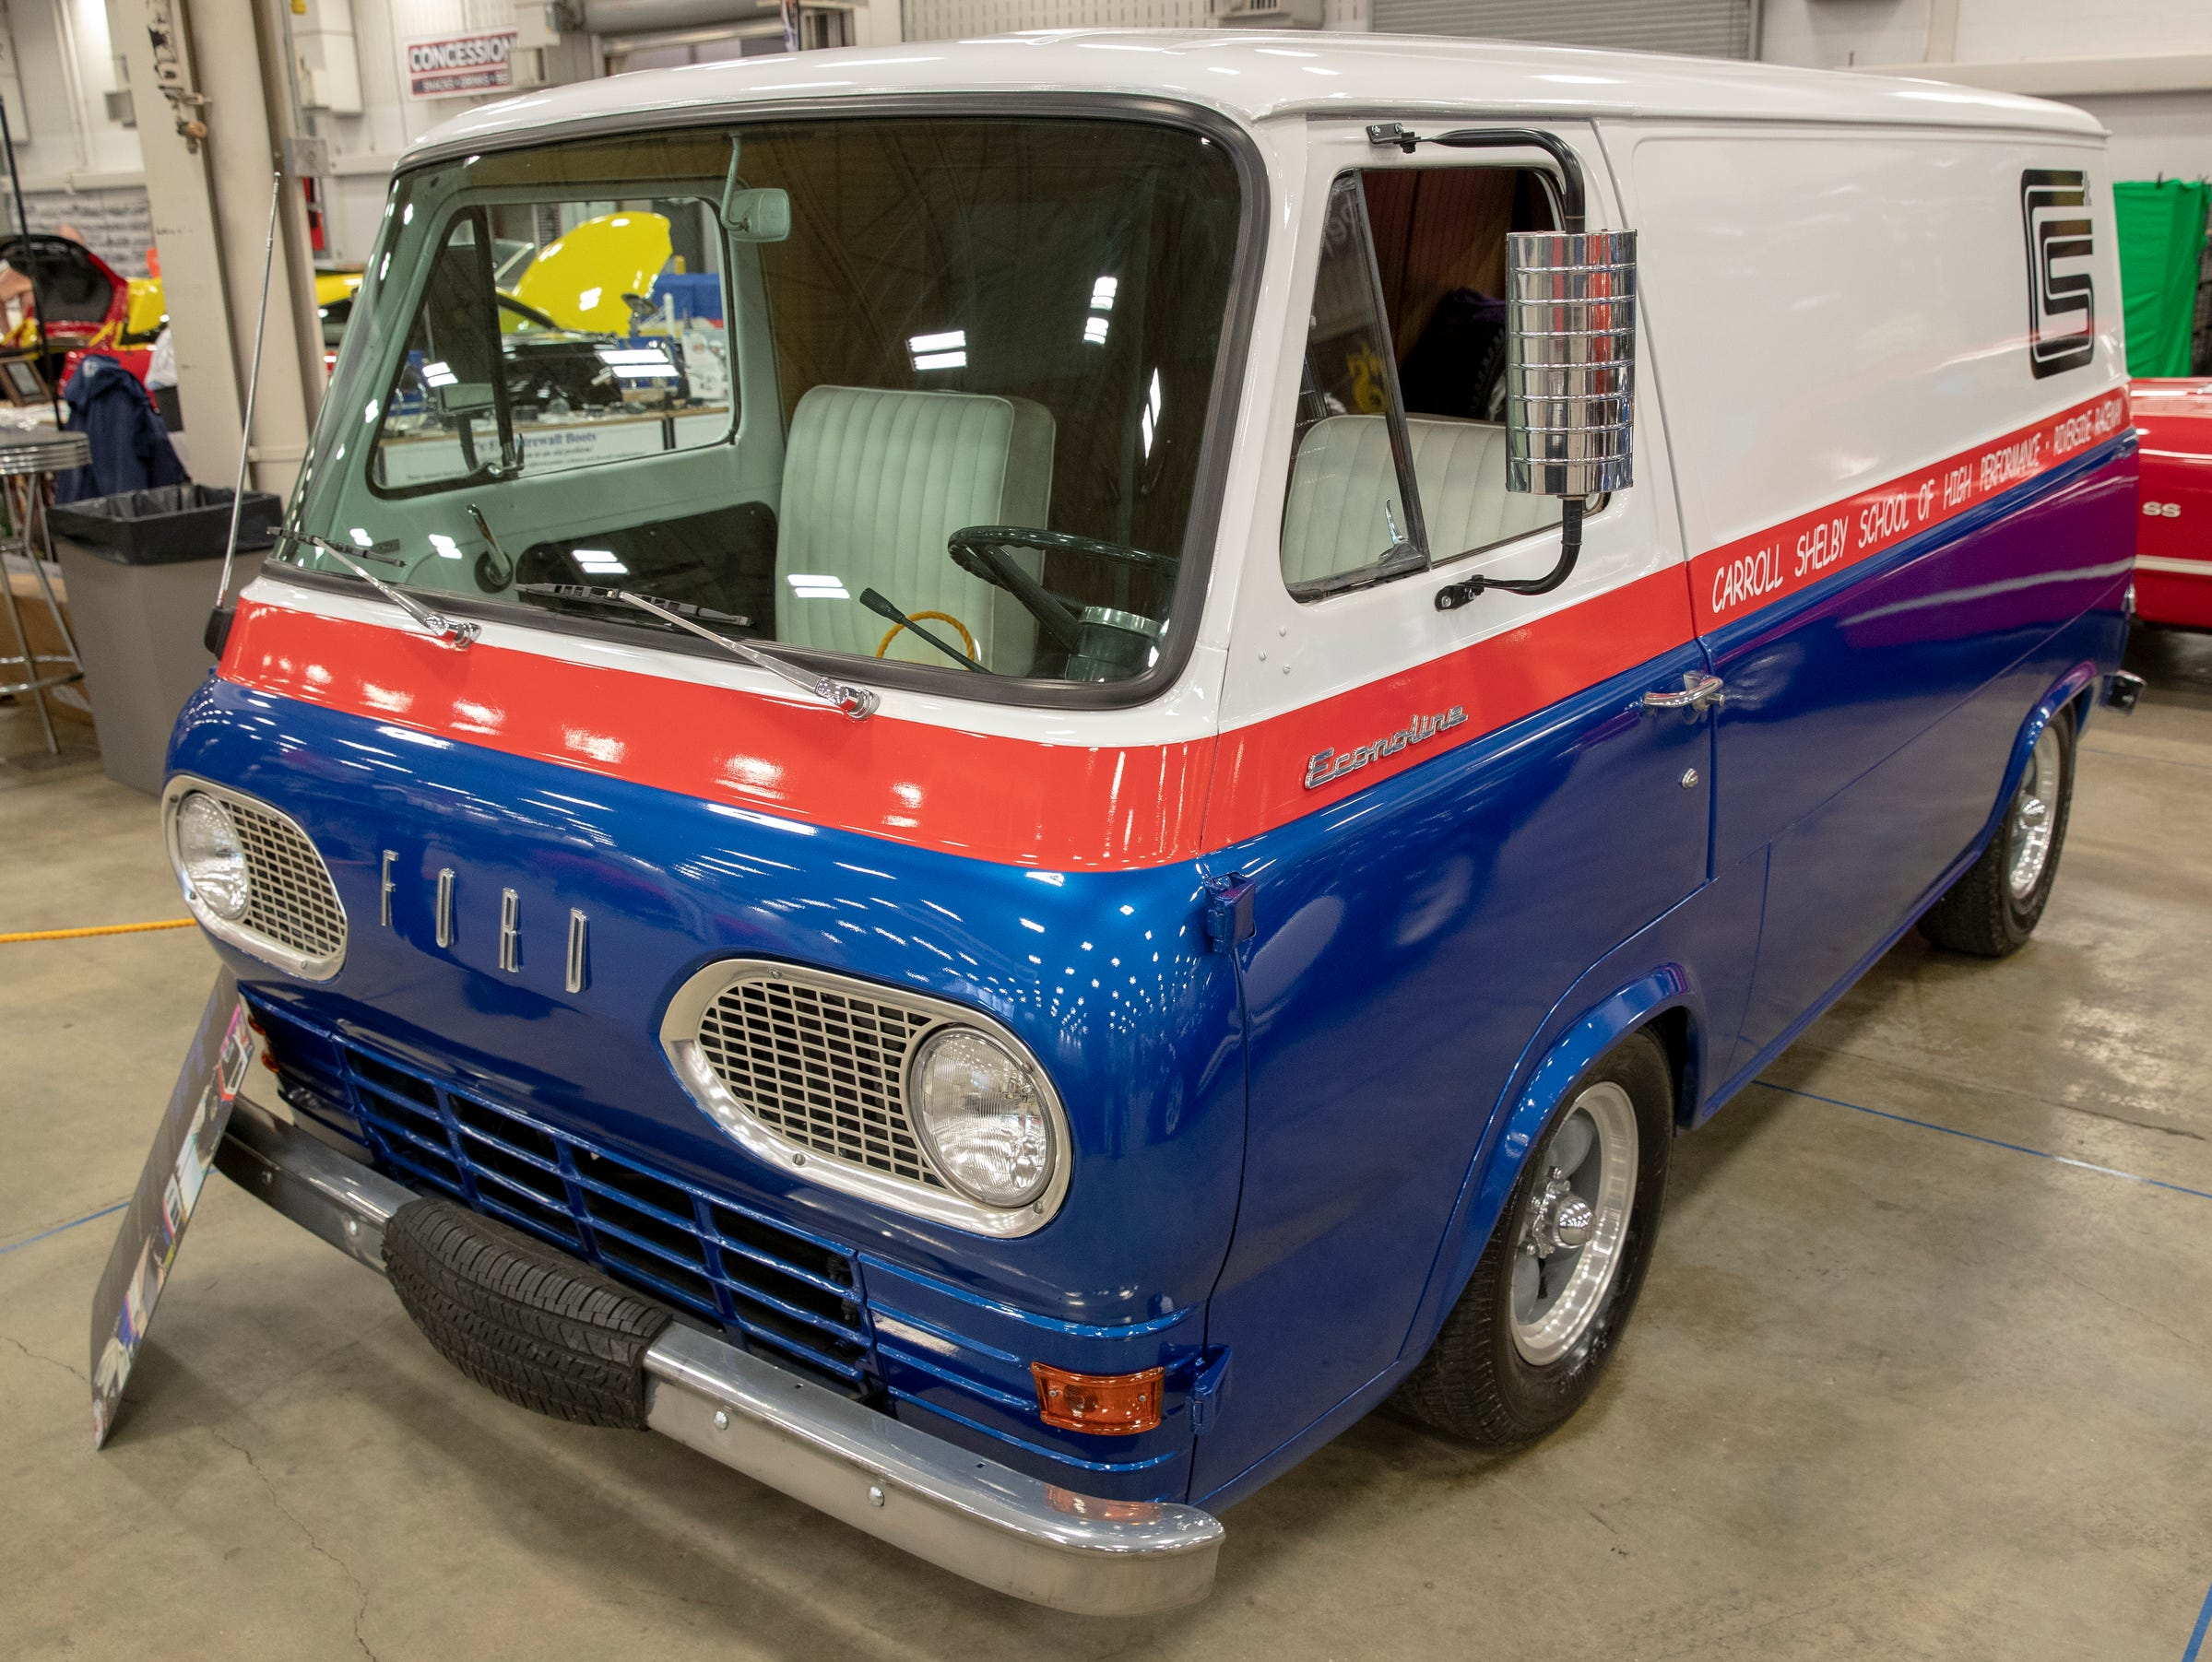 A 1962 Ford Econoline Van, Shelby Tribute, at World of Wheels at the Indiana State Fairgrounds, Indianapolis, Friday, Feb. 8, 2019. The event runs through the weekend and features four big rooms of stock and heavily customized cars.